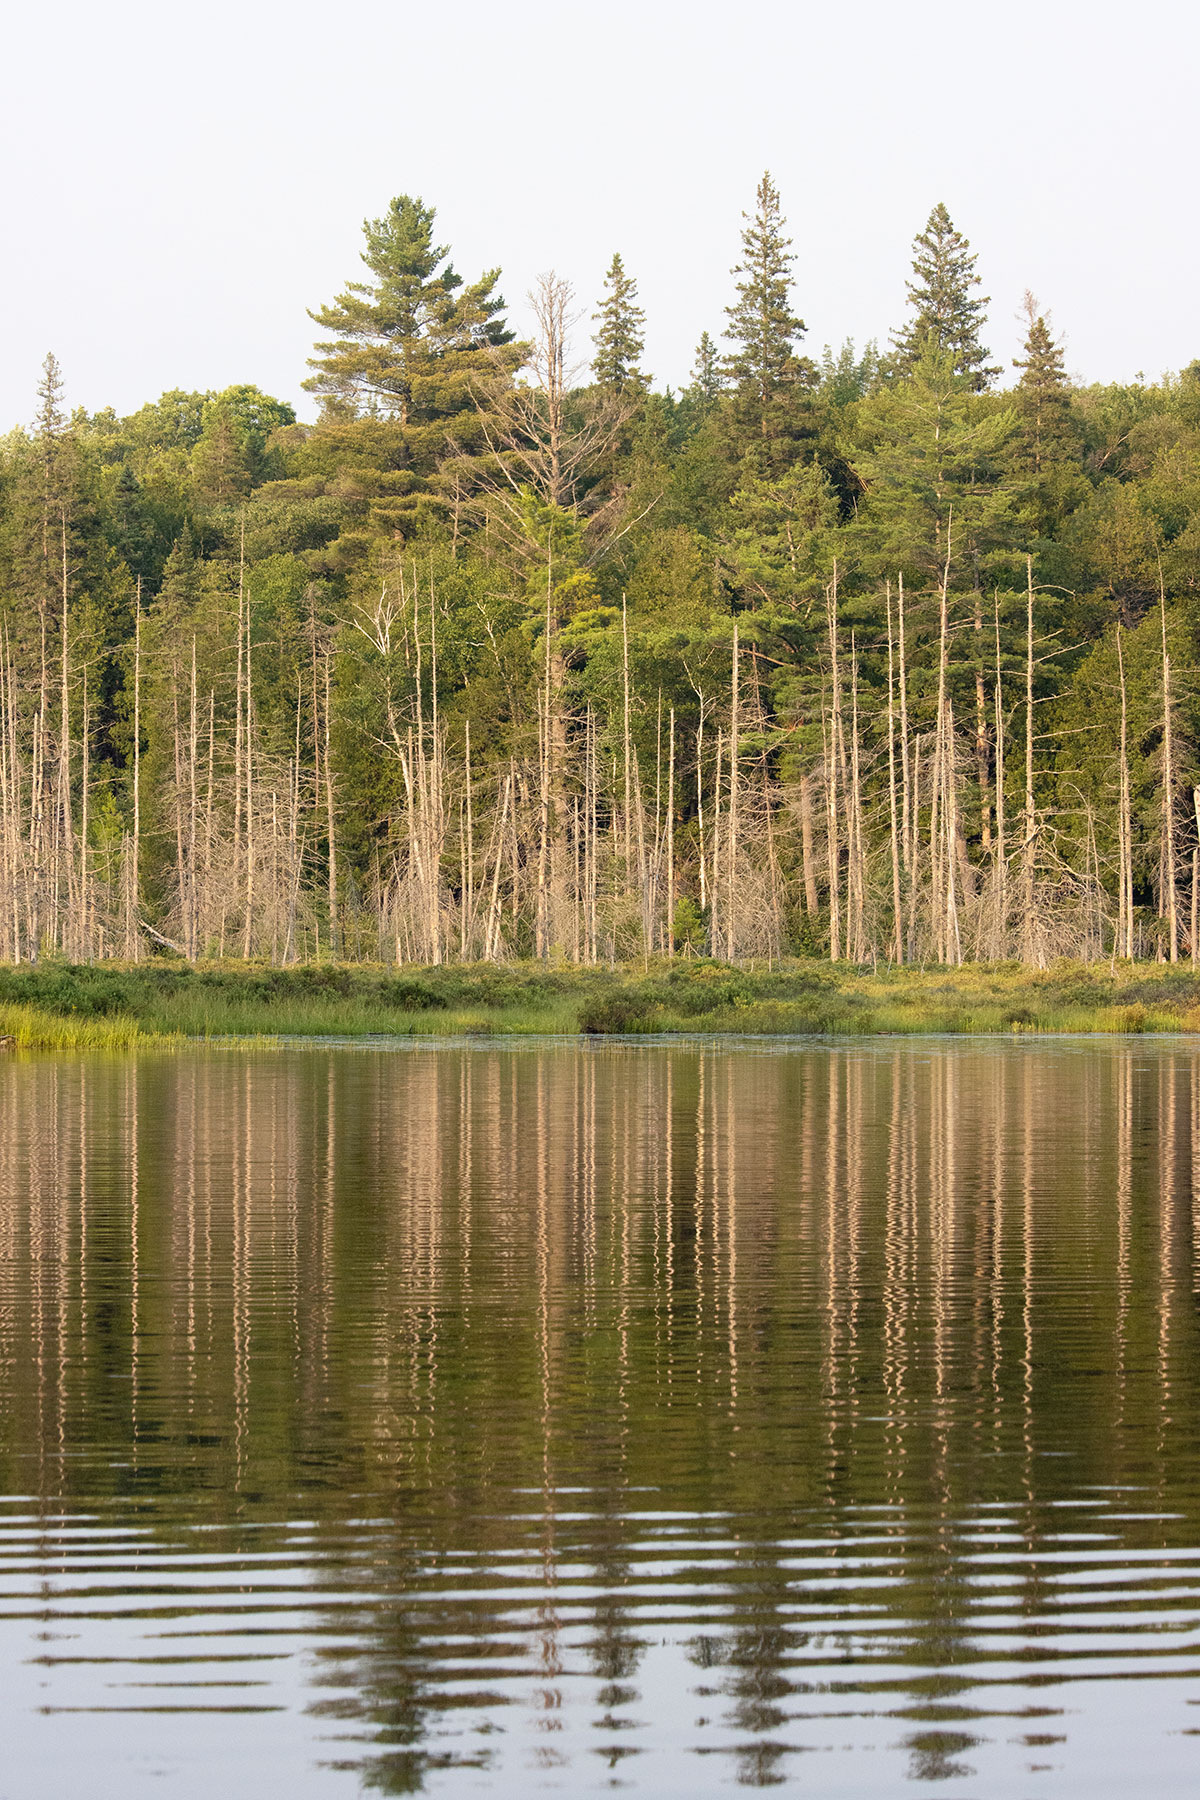 Dead trees on Queer Lake in July 2021 - 5